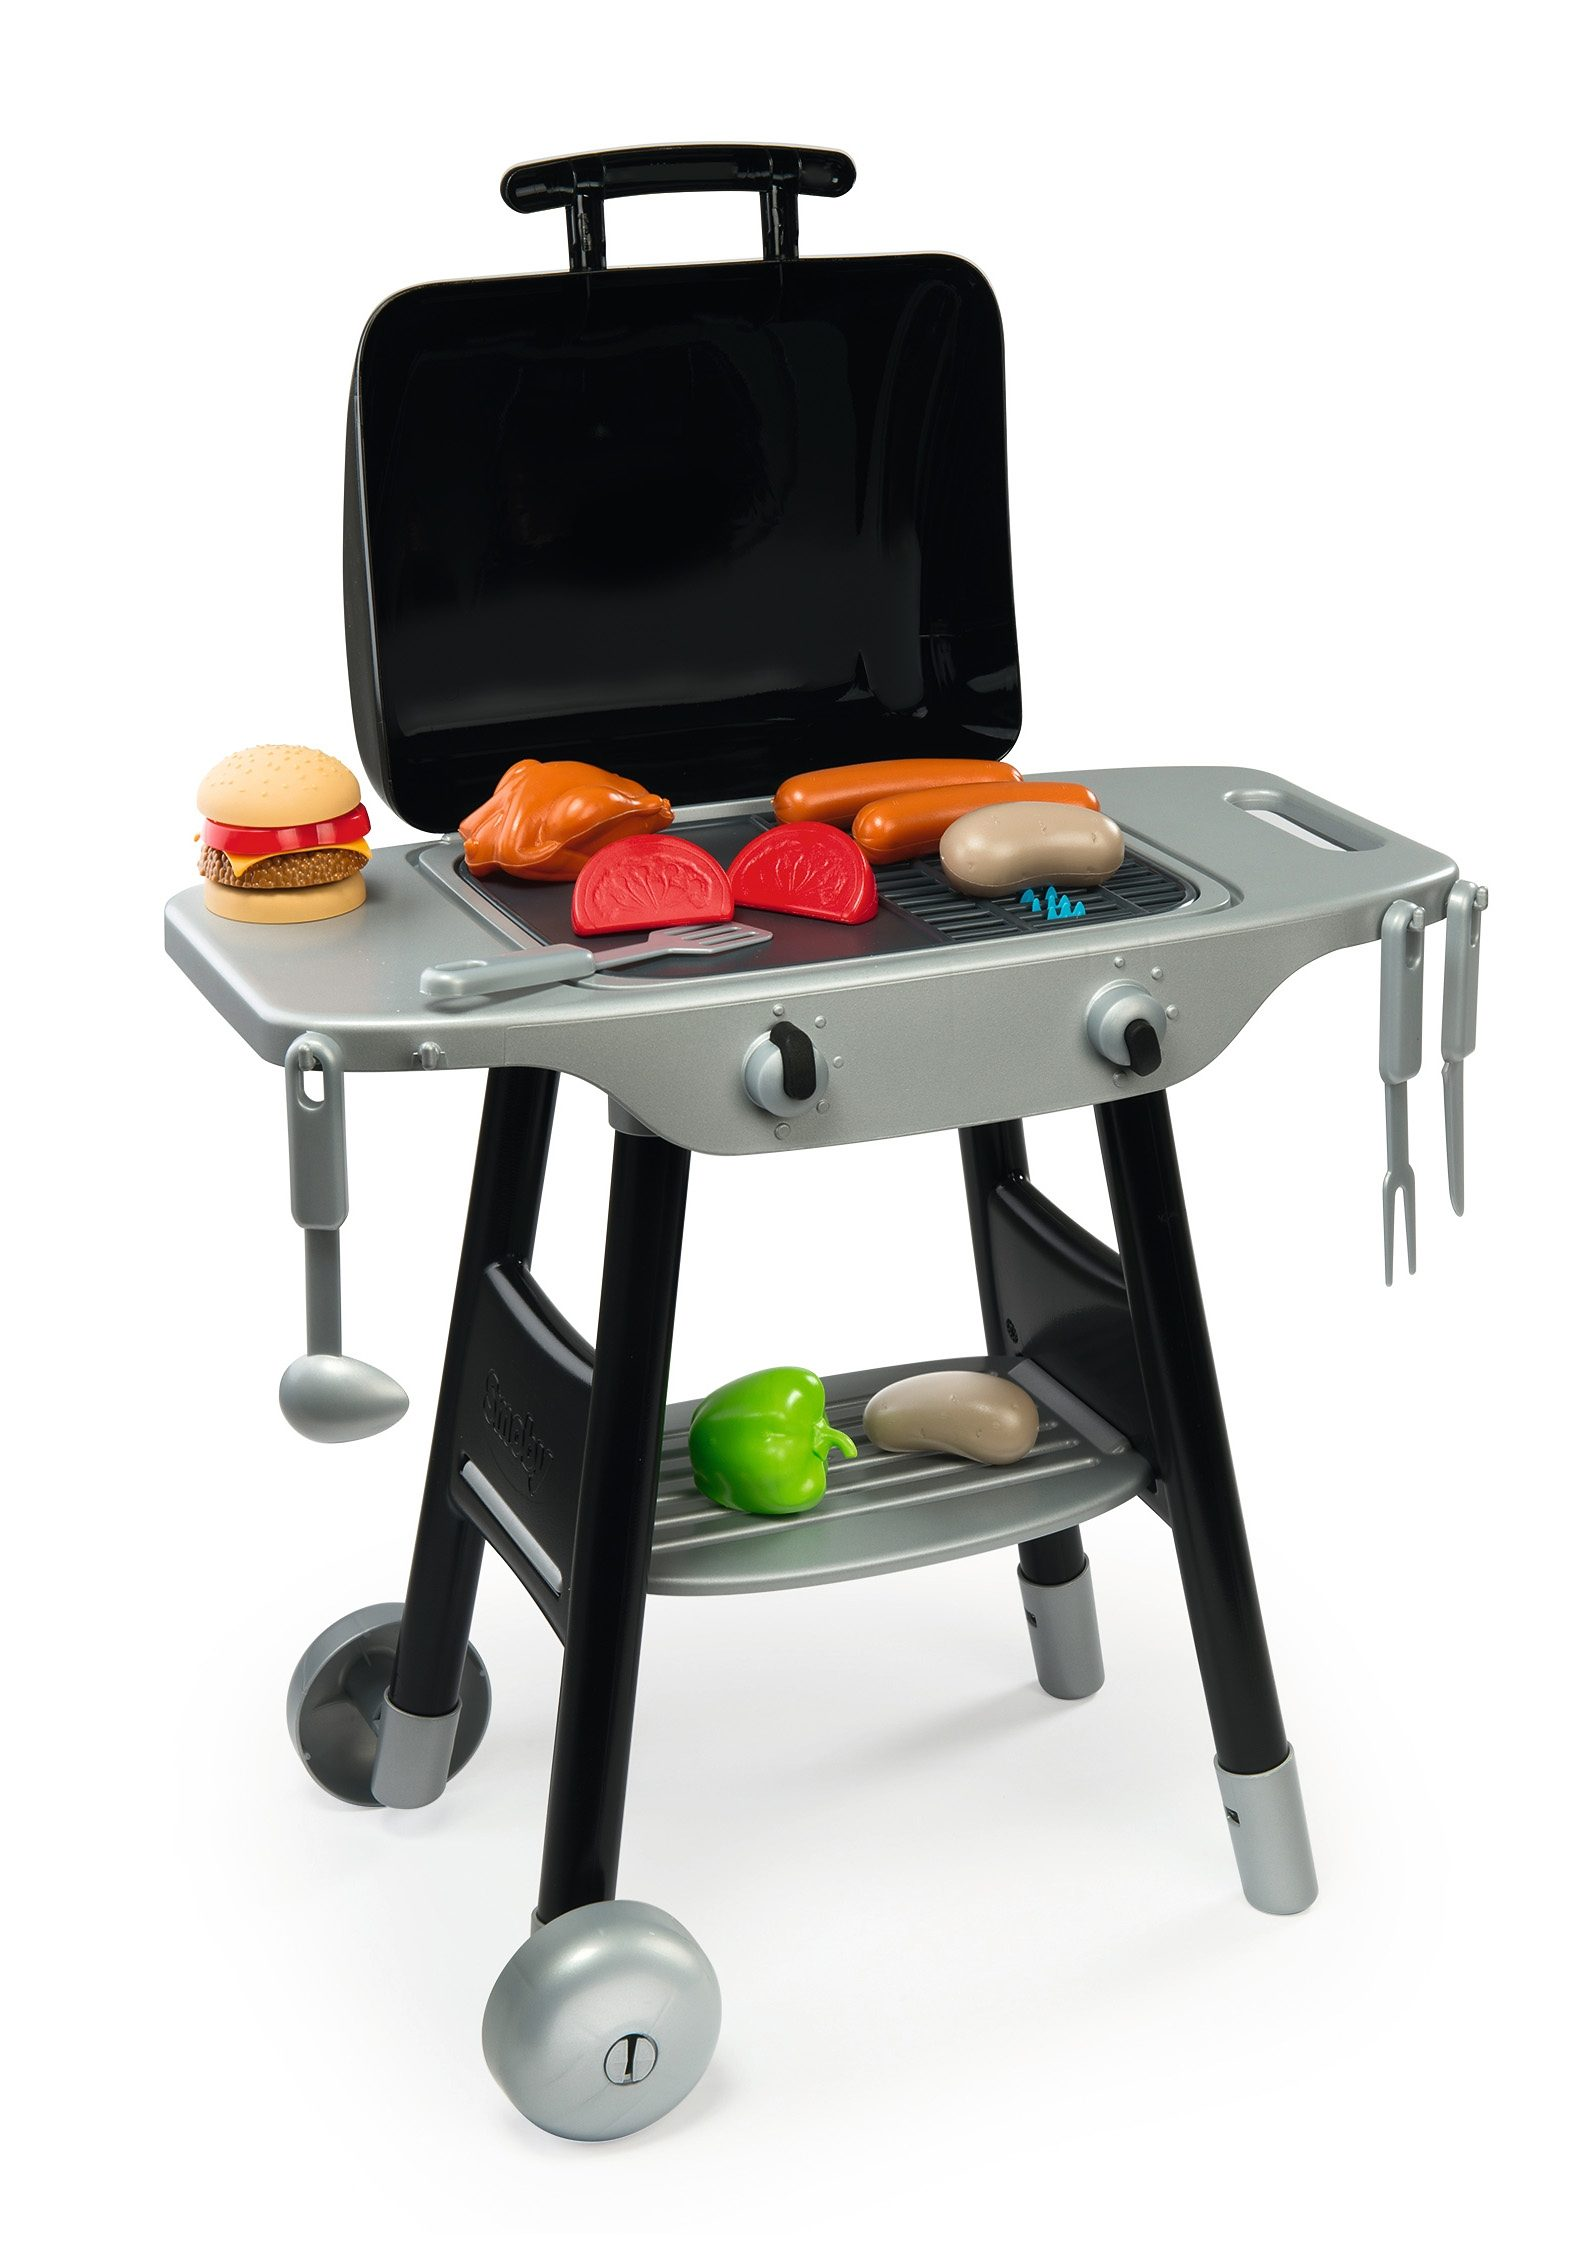 Smoby Spielzeug-Standgrill, »Plancha Barbecue Grill«